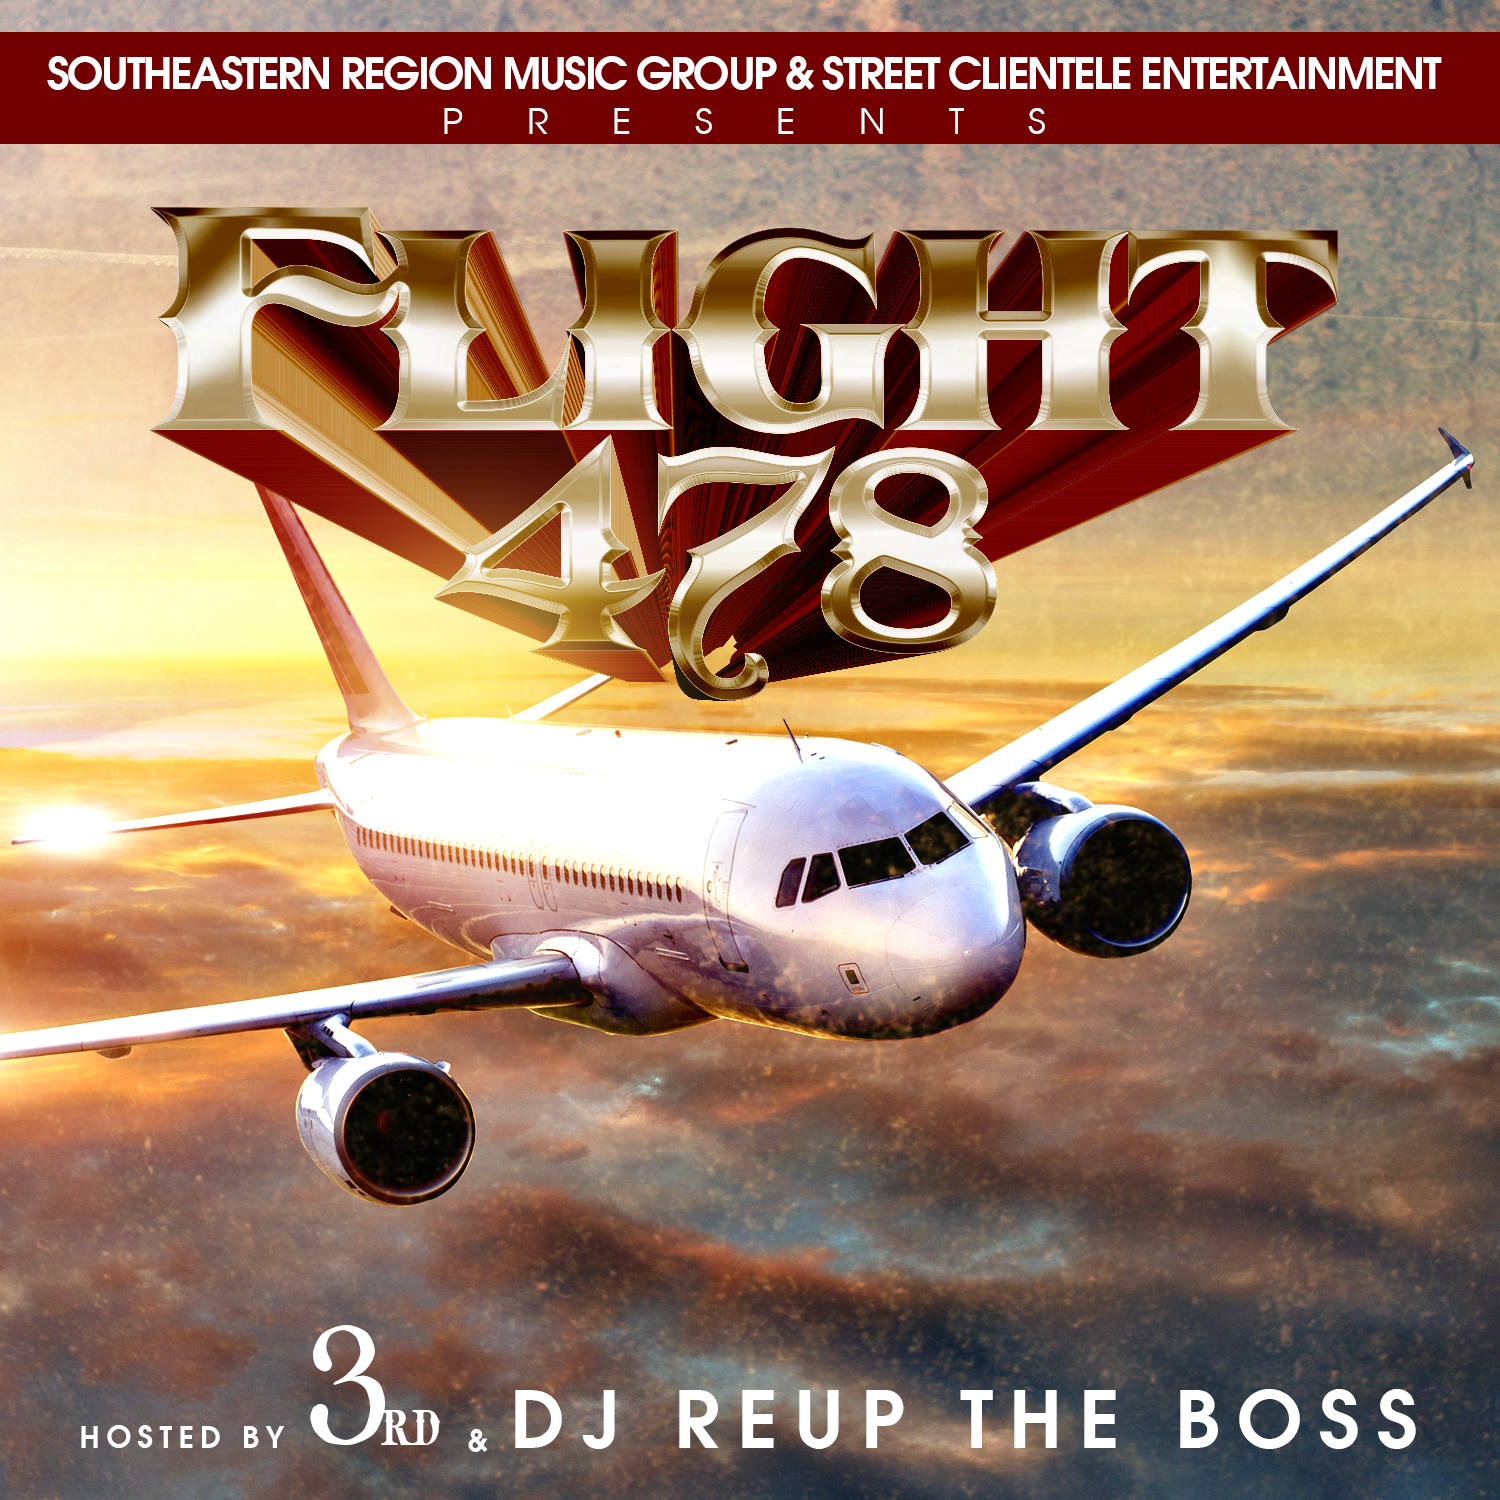 Calling All Artists for Flight 478 [Limited Slots]